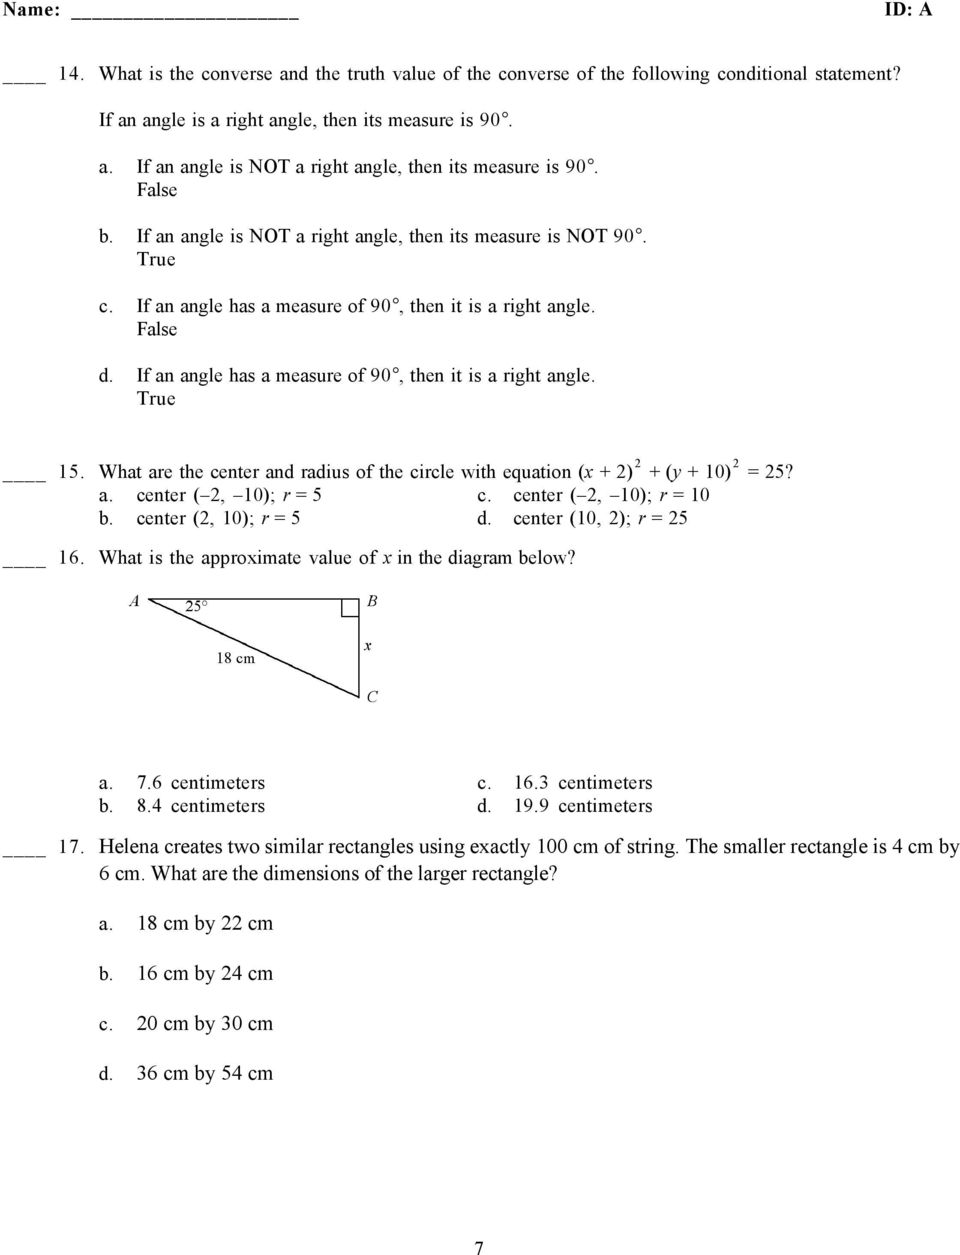 If an angle has a measure of 90, then it is a right angle.